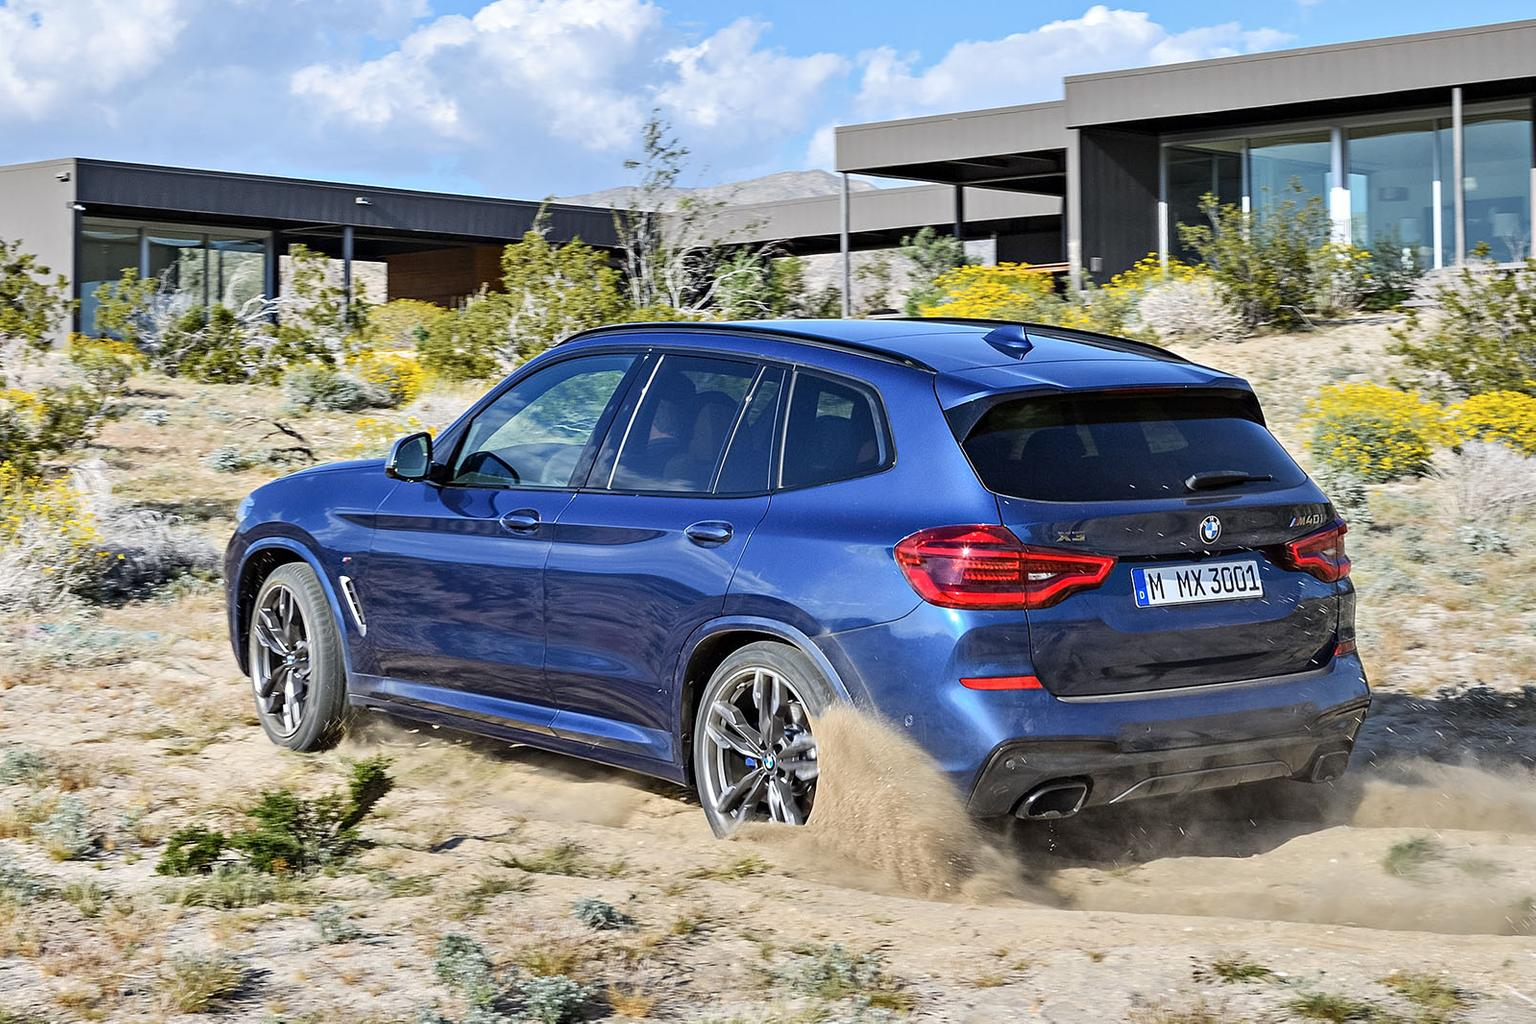 New BMW X3 revealed